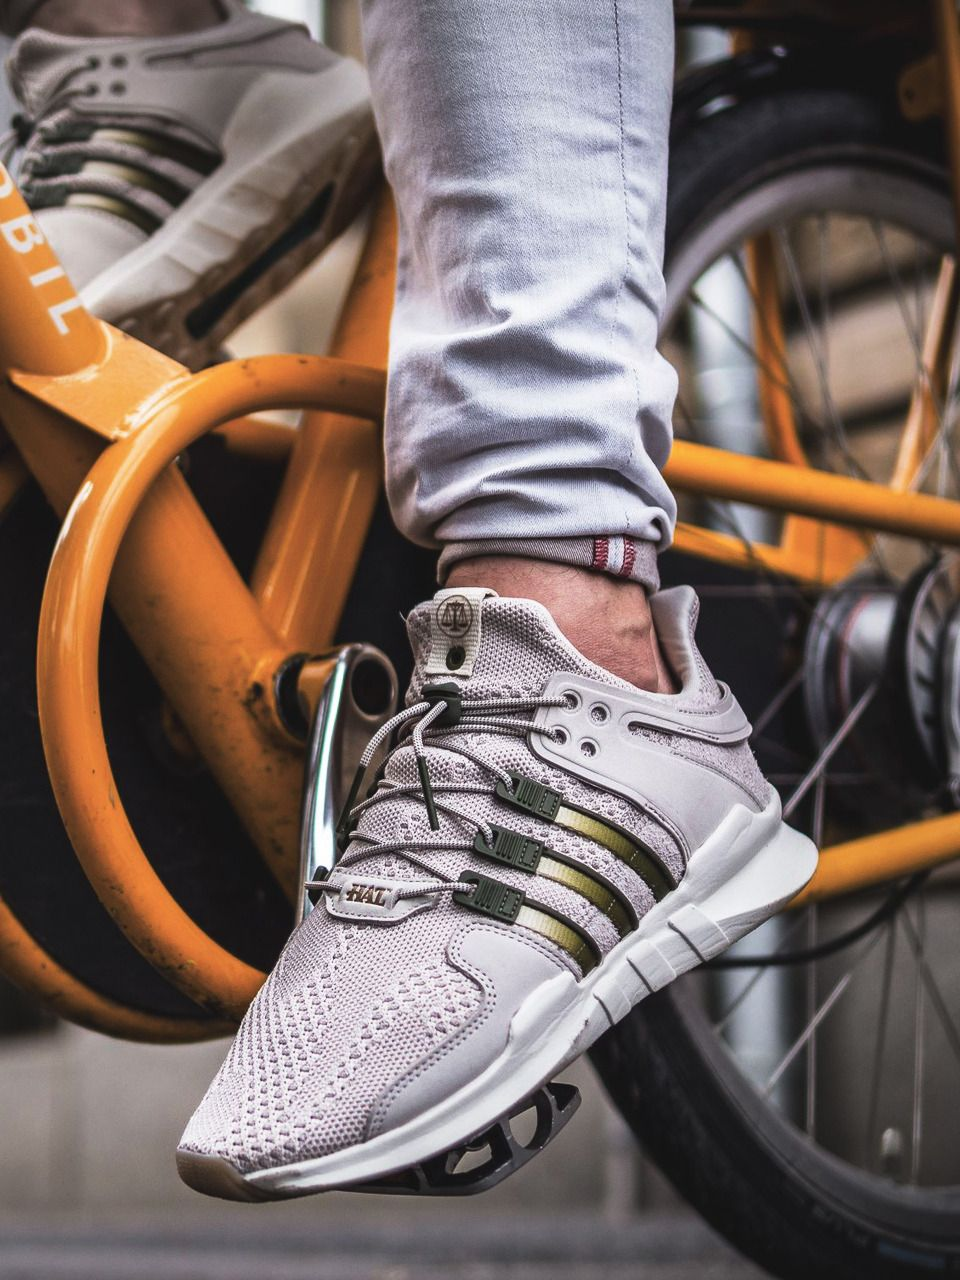 buy popular 982b2 871c4 Highs and Lows x Adidas Consortium EQT Support ADV - 2017 ...